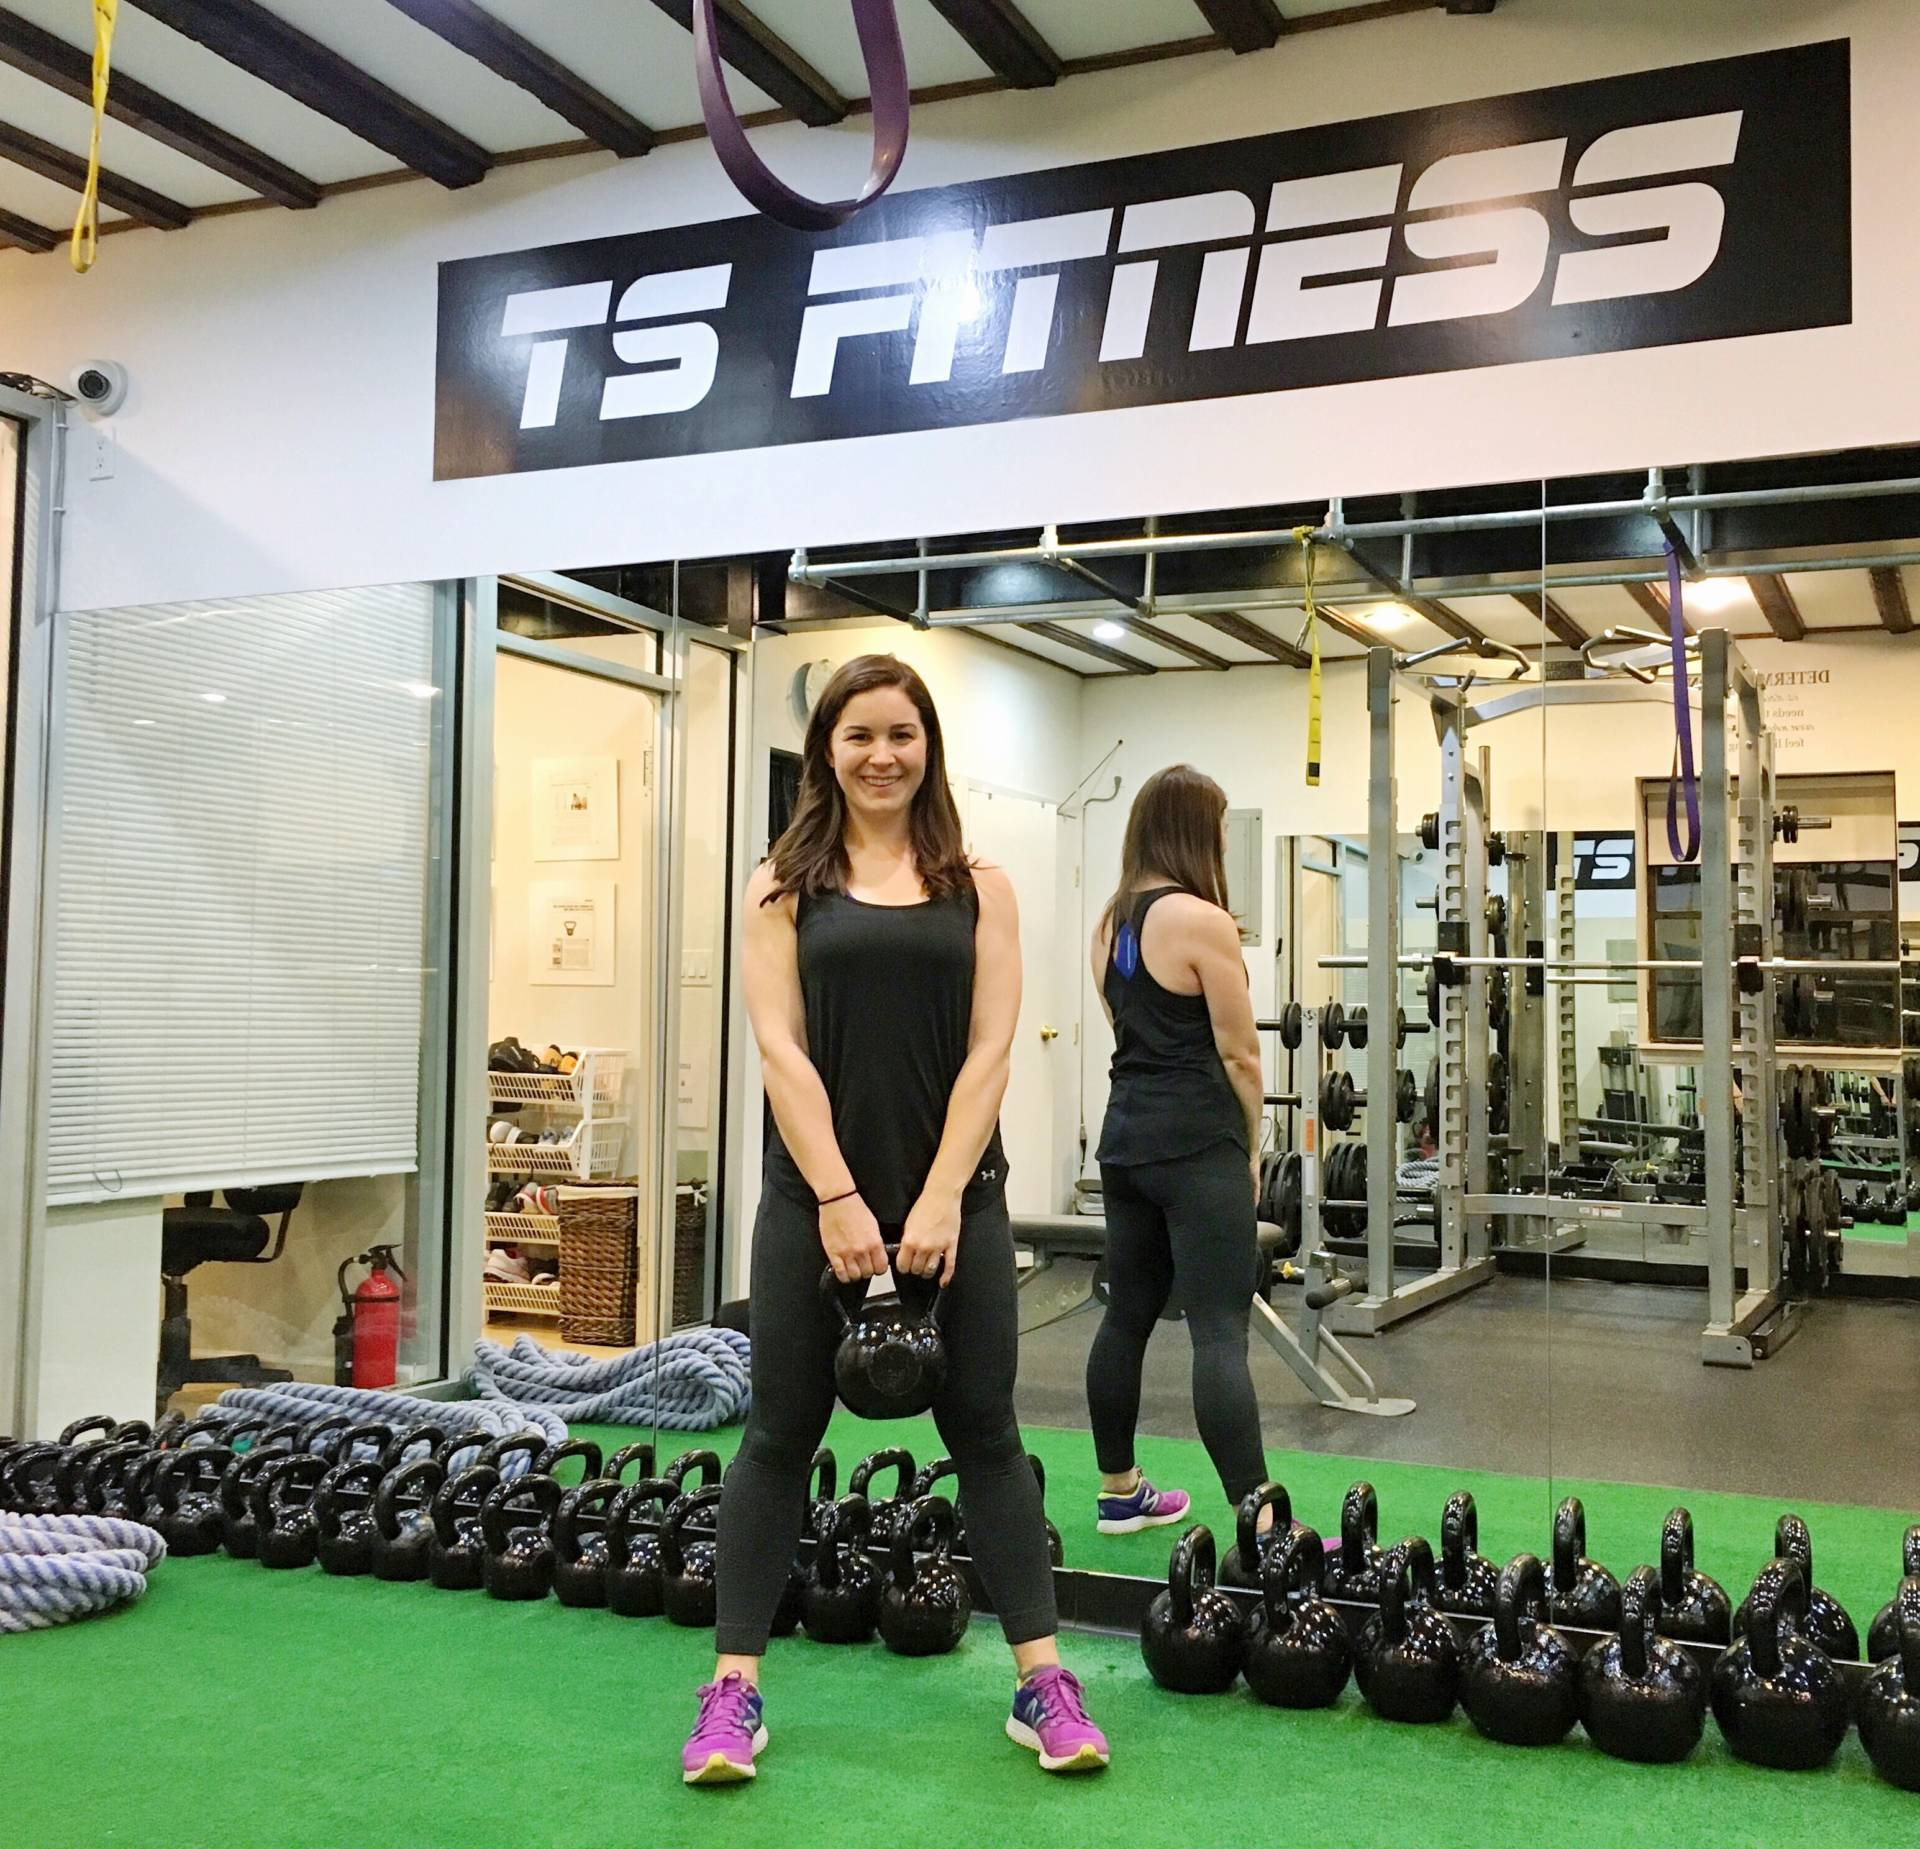 NYC: TS Fitness Review